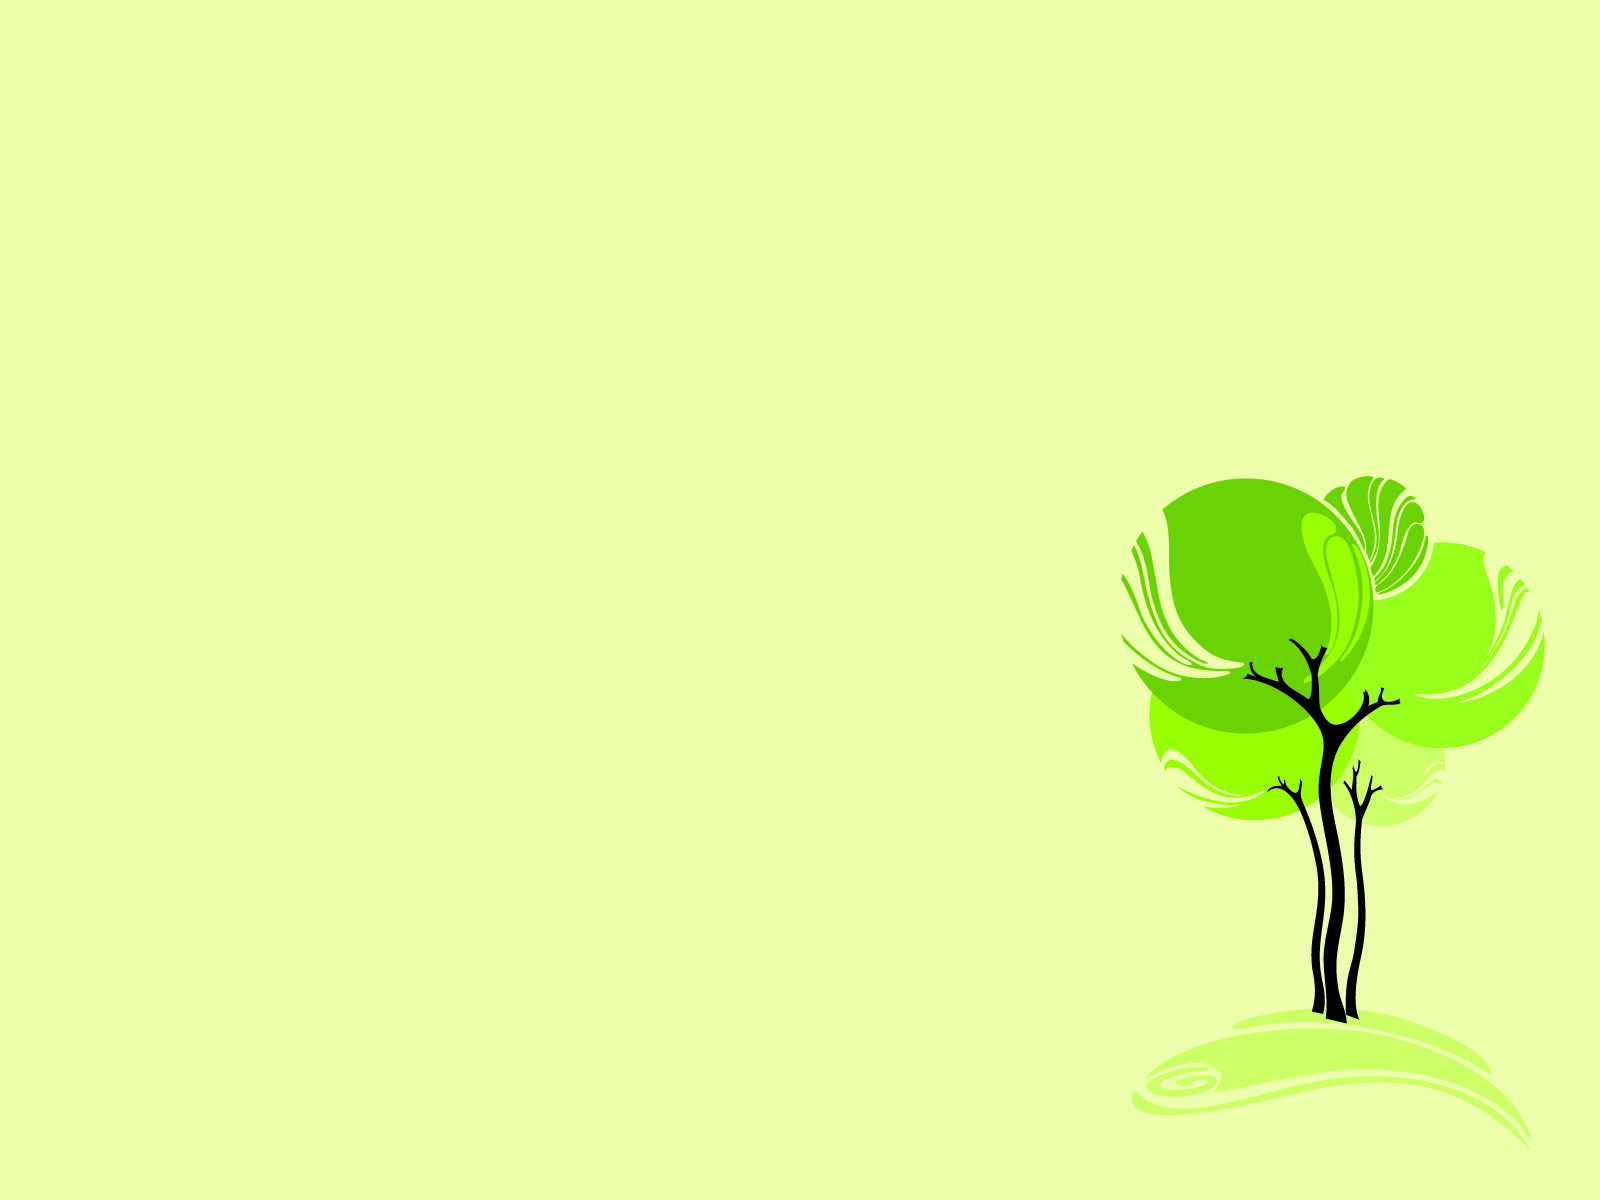 Green Design Tree Backgrounds   Nature   PPT Backgrounds 1600x1200